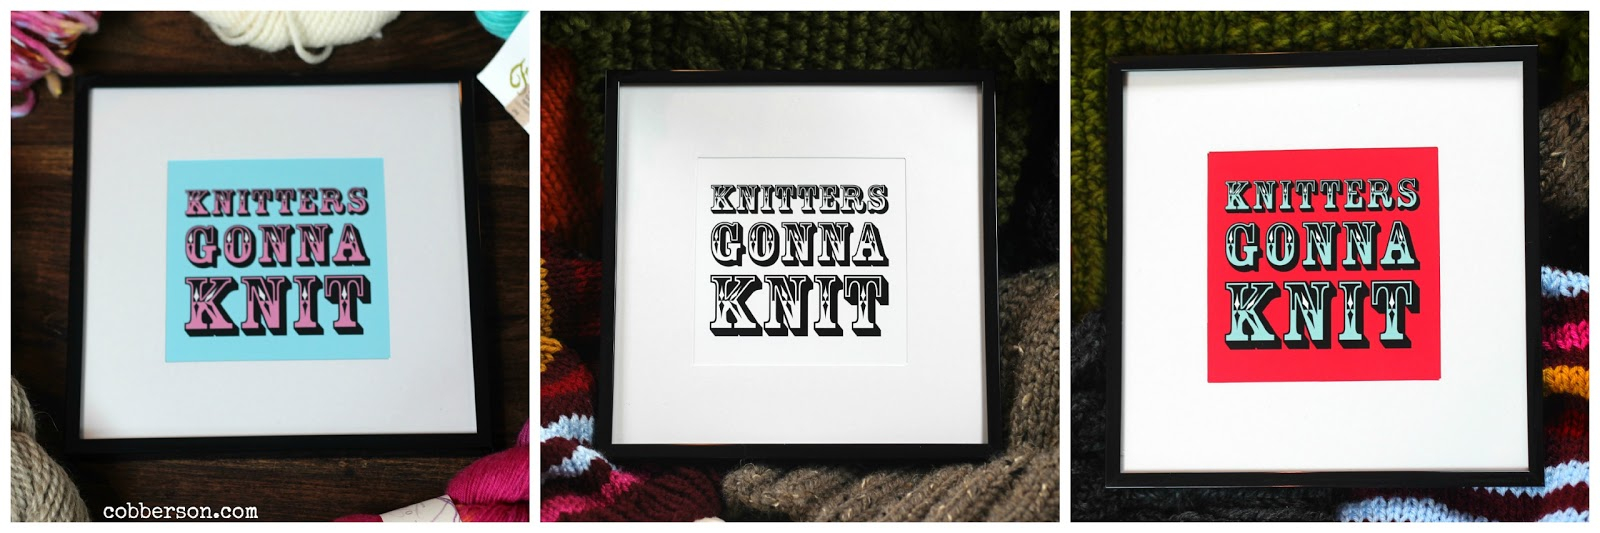 Cobberson Knitters Gonna Knit prints